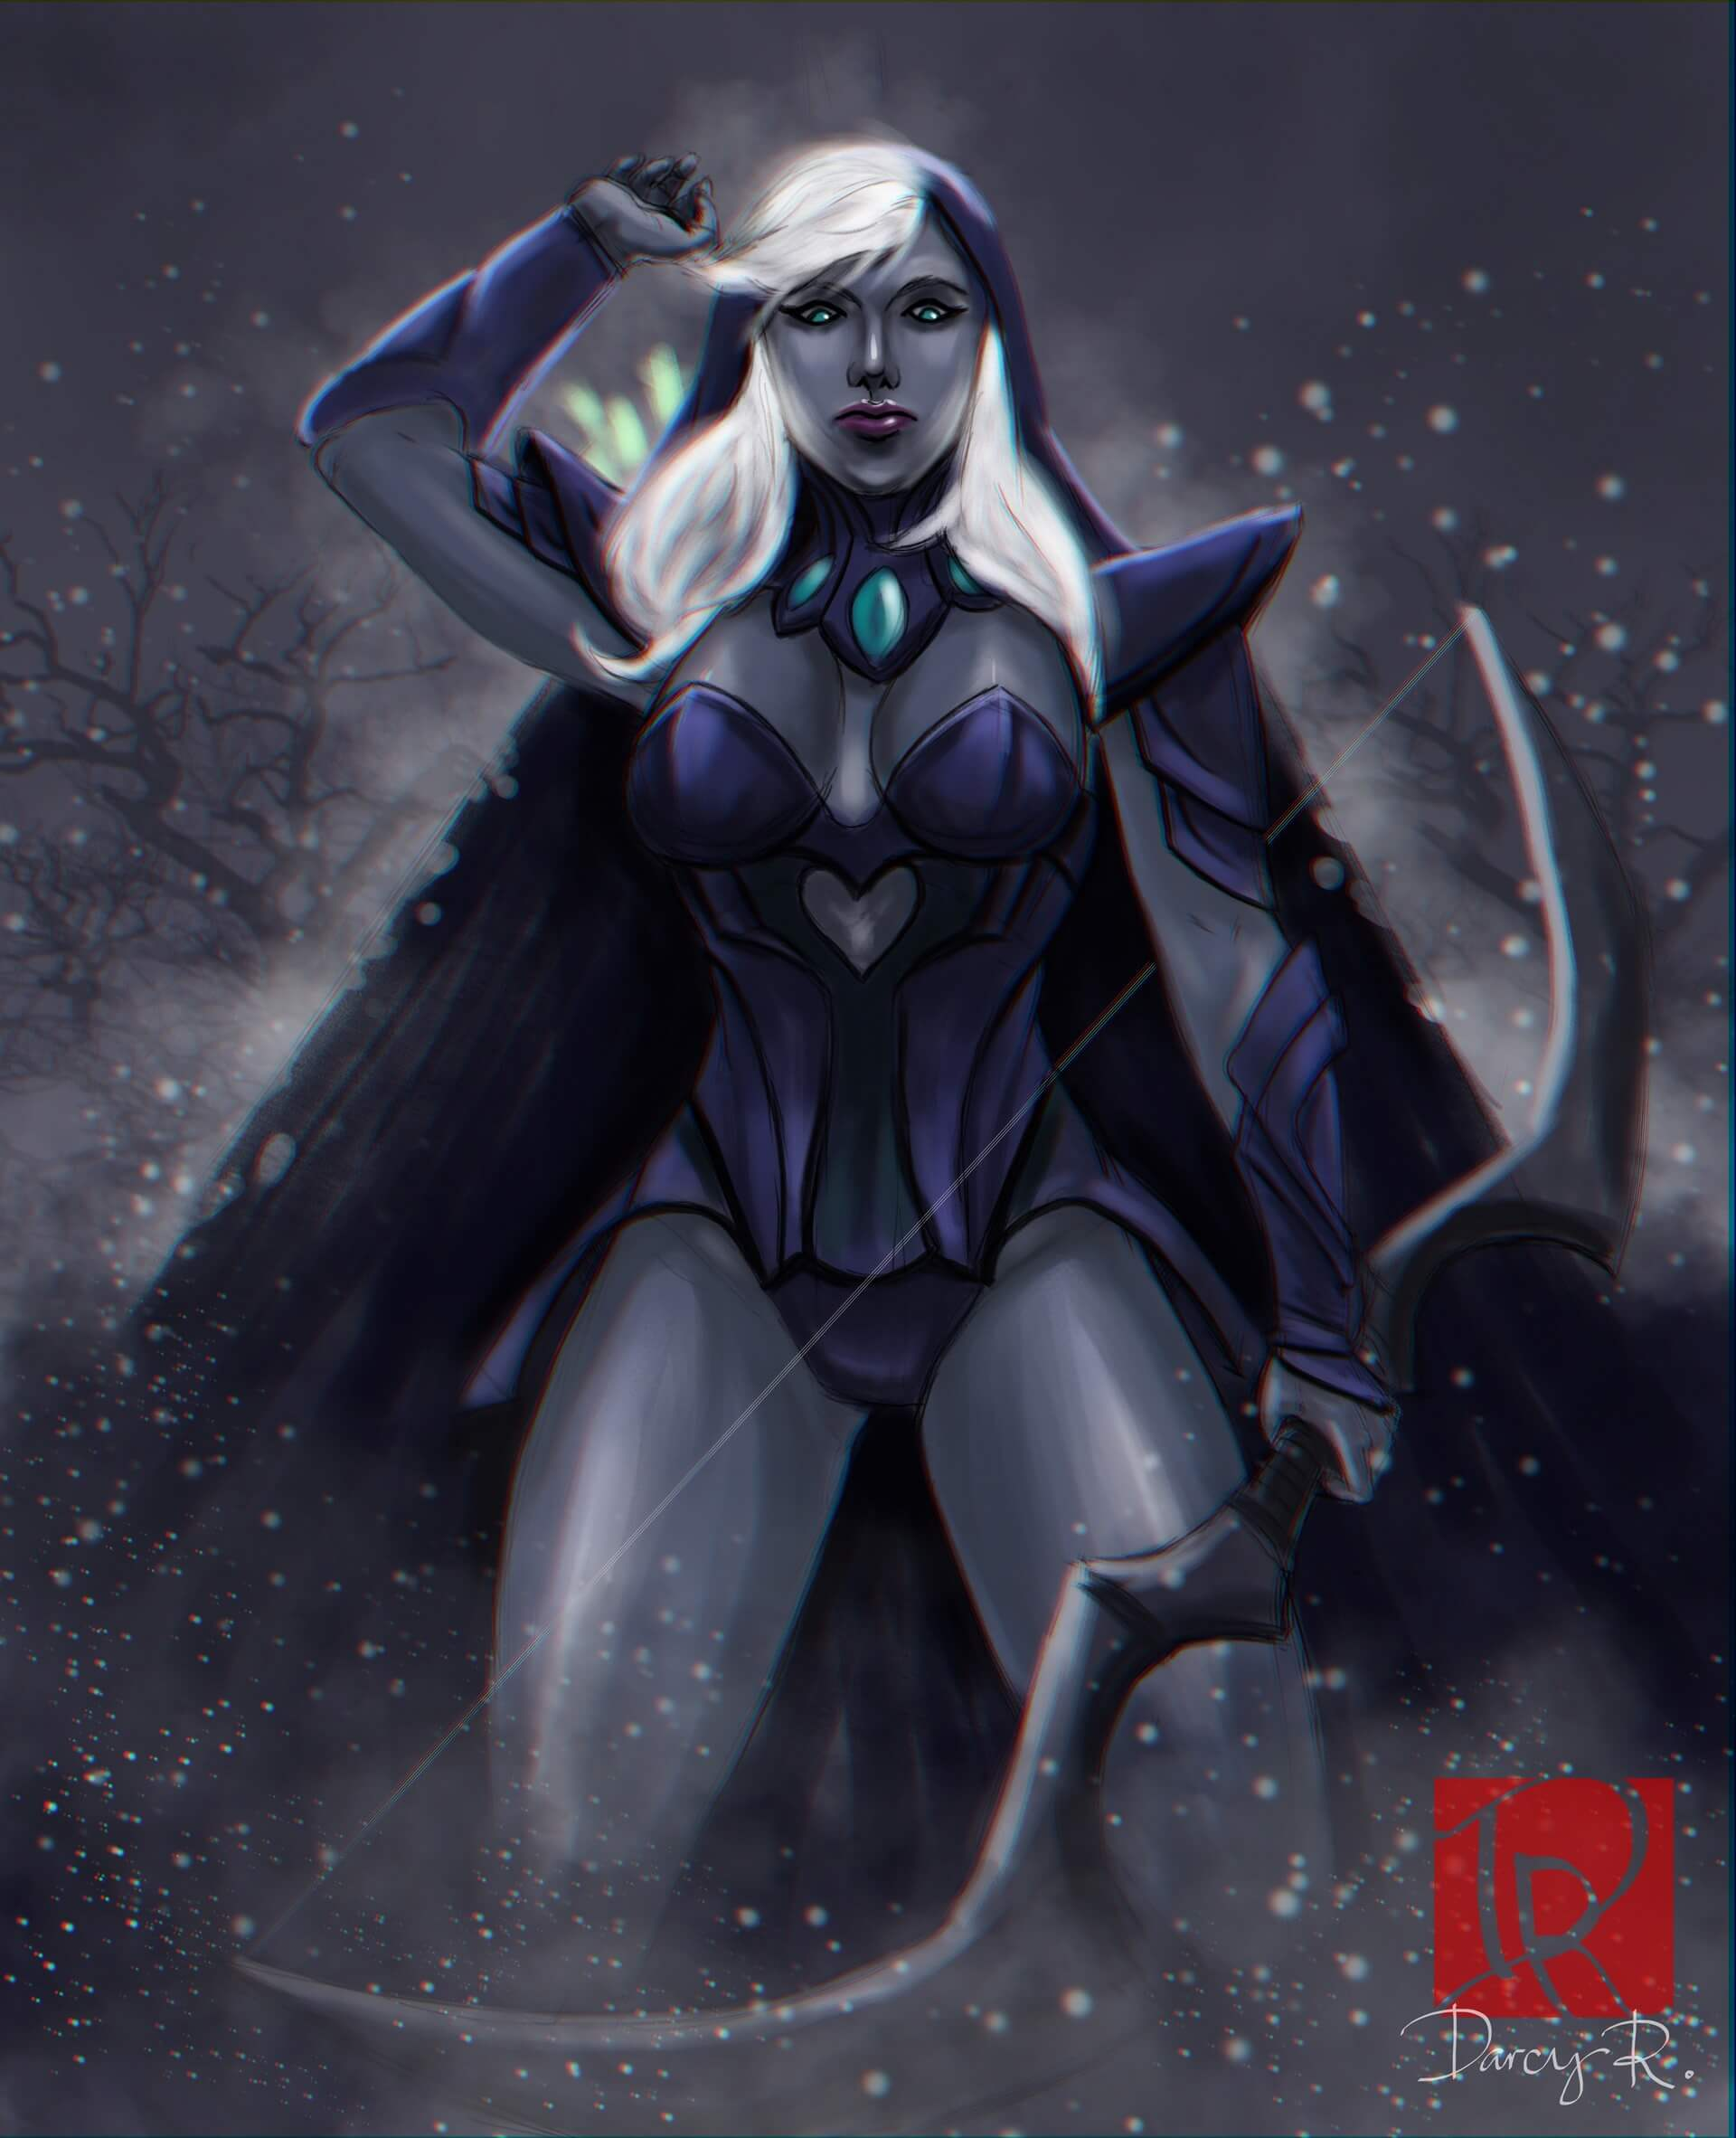 Traxex the Drow Ranger thighs pic